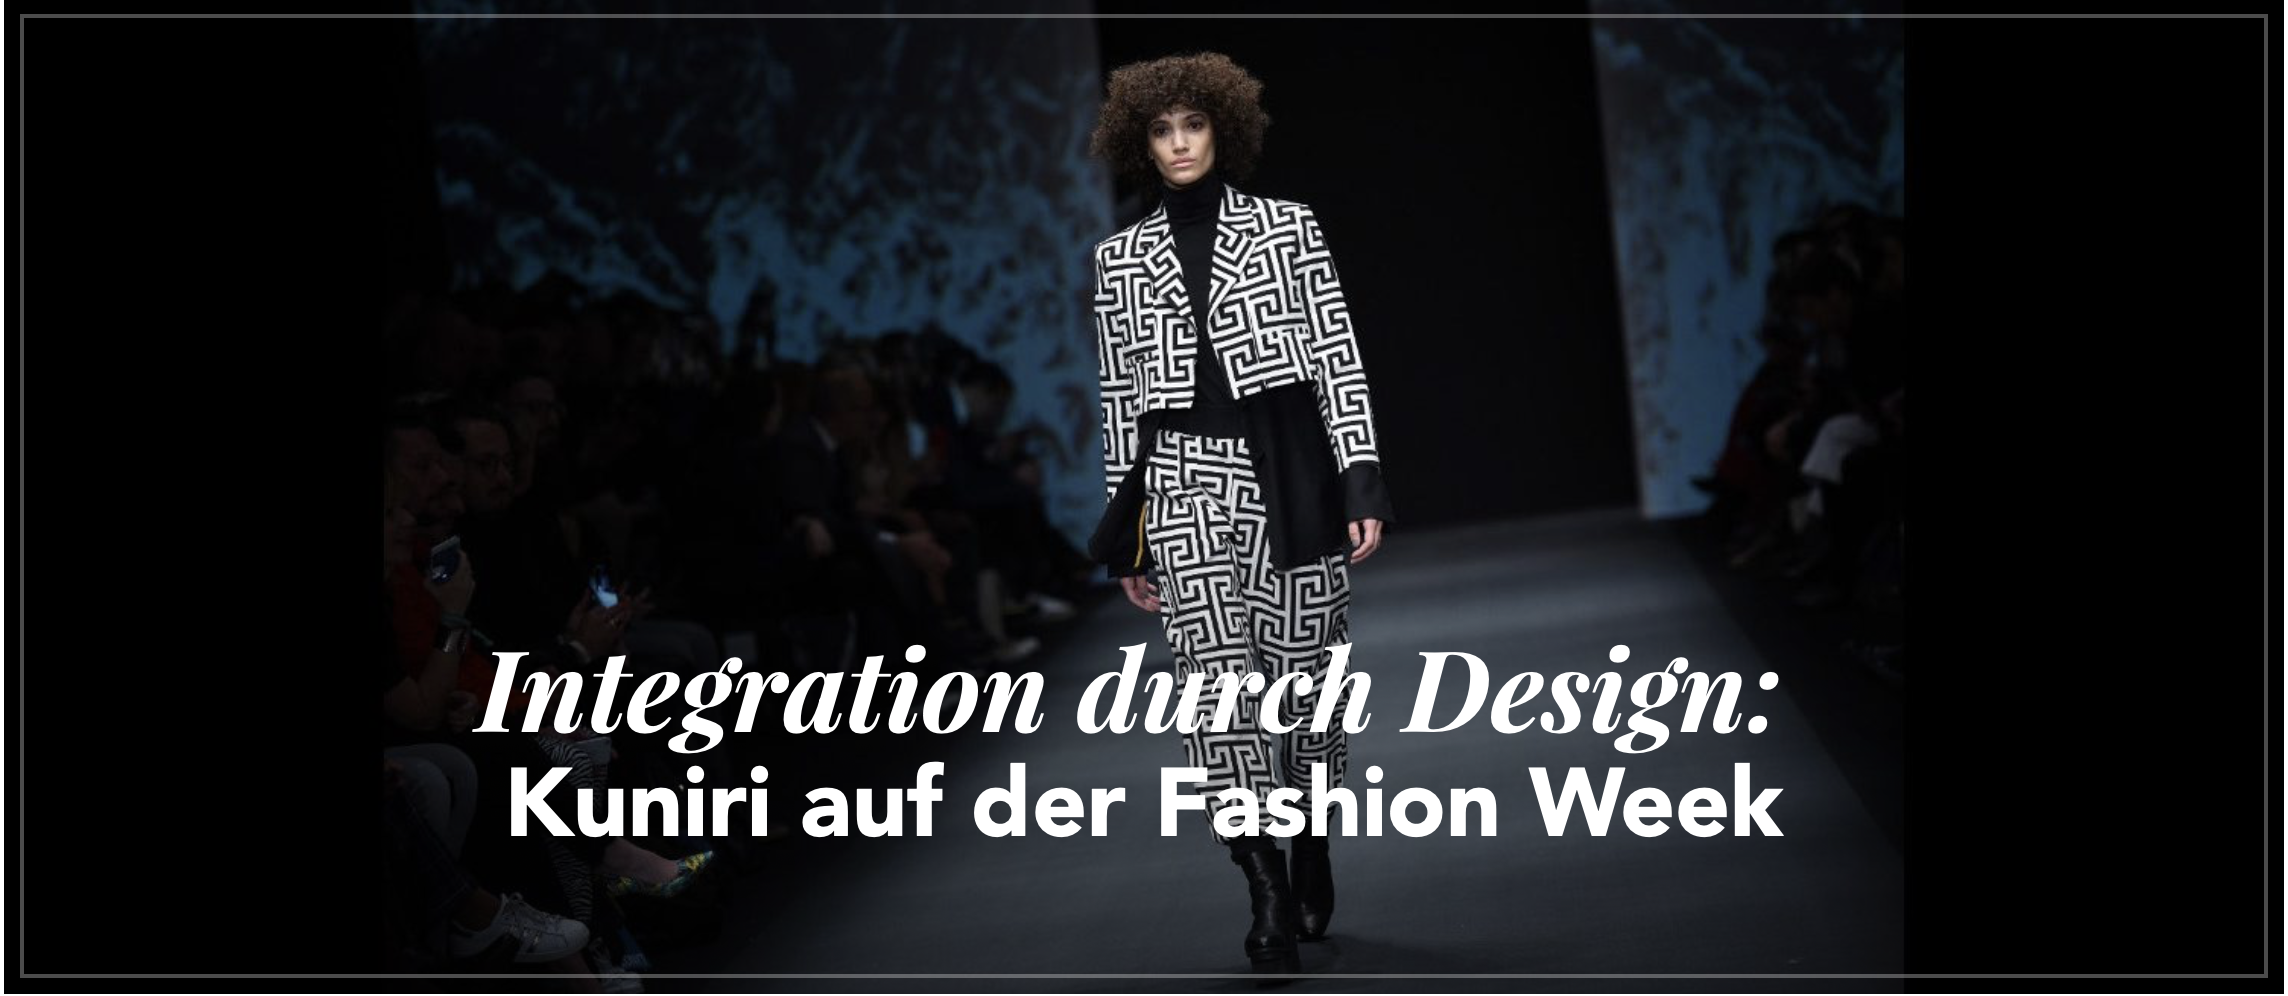 https://neoavantgarde.de/kuniri-fashion-week-berlin/